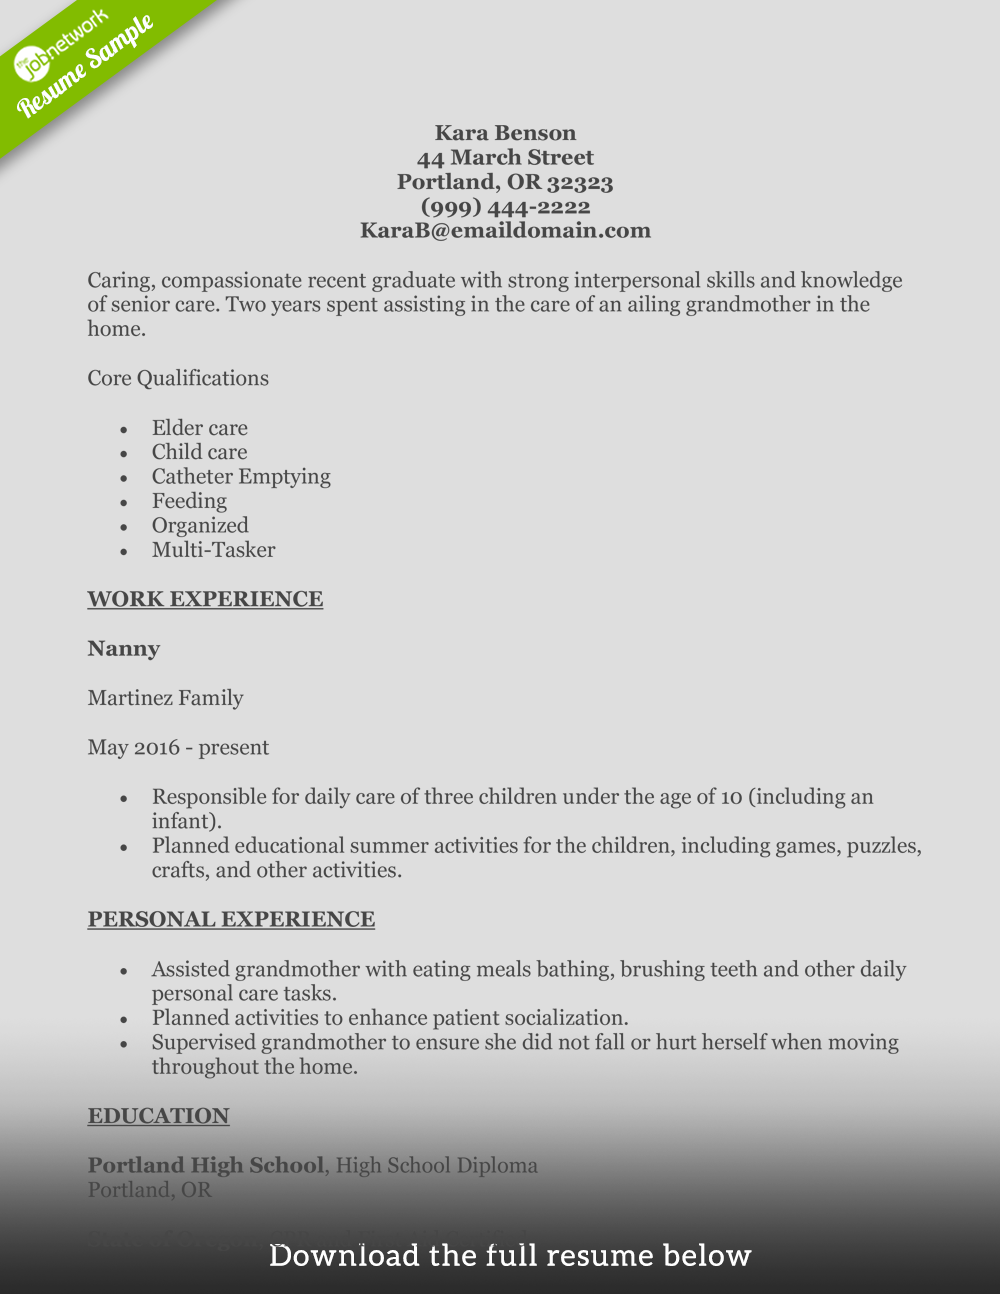 Home Health Aide Resume Entry Level Within Sample Home Health Aide Resume